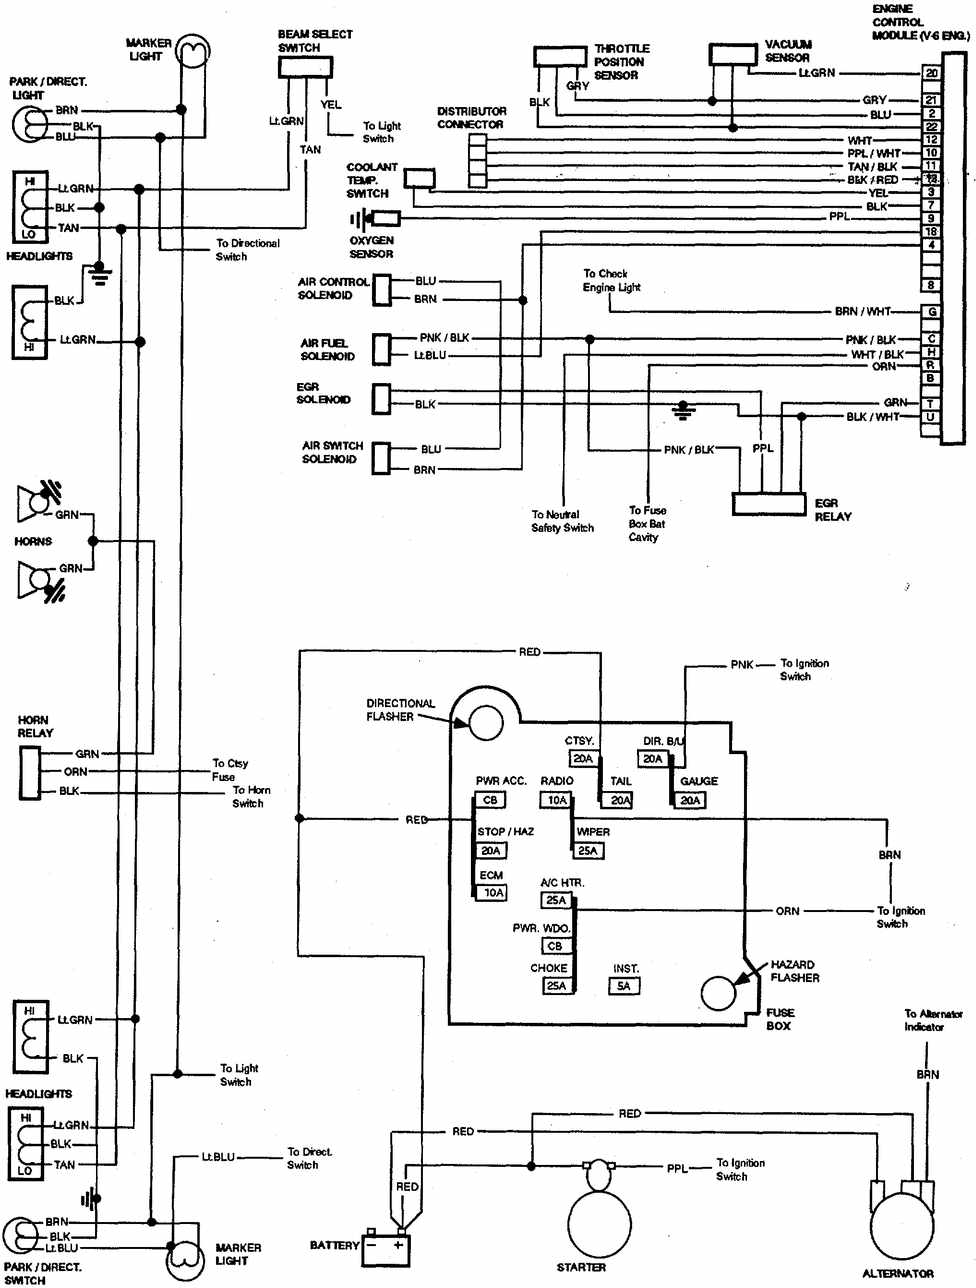 91 F150 Ac Diagram | Wiring Schematic Diagram  F Ac Wiring Diagram on 91 f150 fuse panel diagram, 90 f150 wiring diagram, 91 f150 ford, f150 light switch diagram, 91 f150 headlights, 91 f150 alternator diagram, 91 f150 exhaust, f150 wiring harness diagram, light switch wiring diagram,